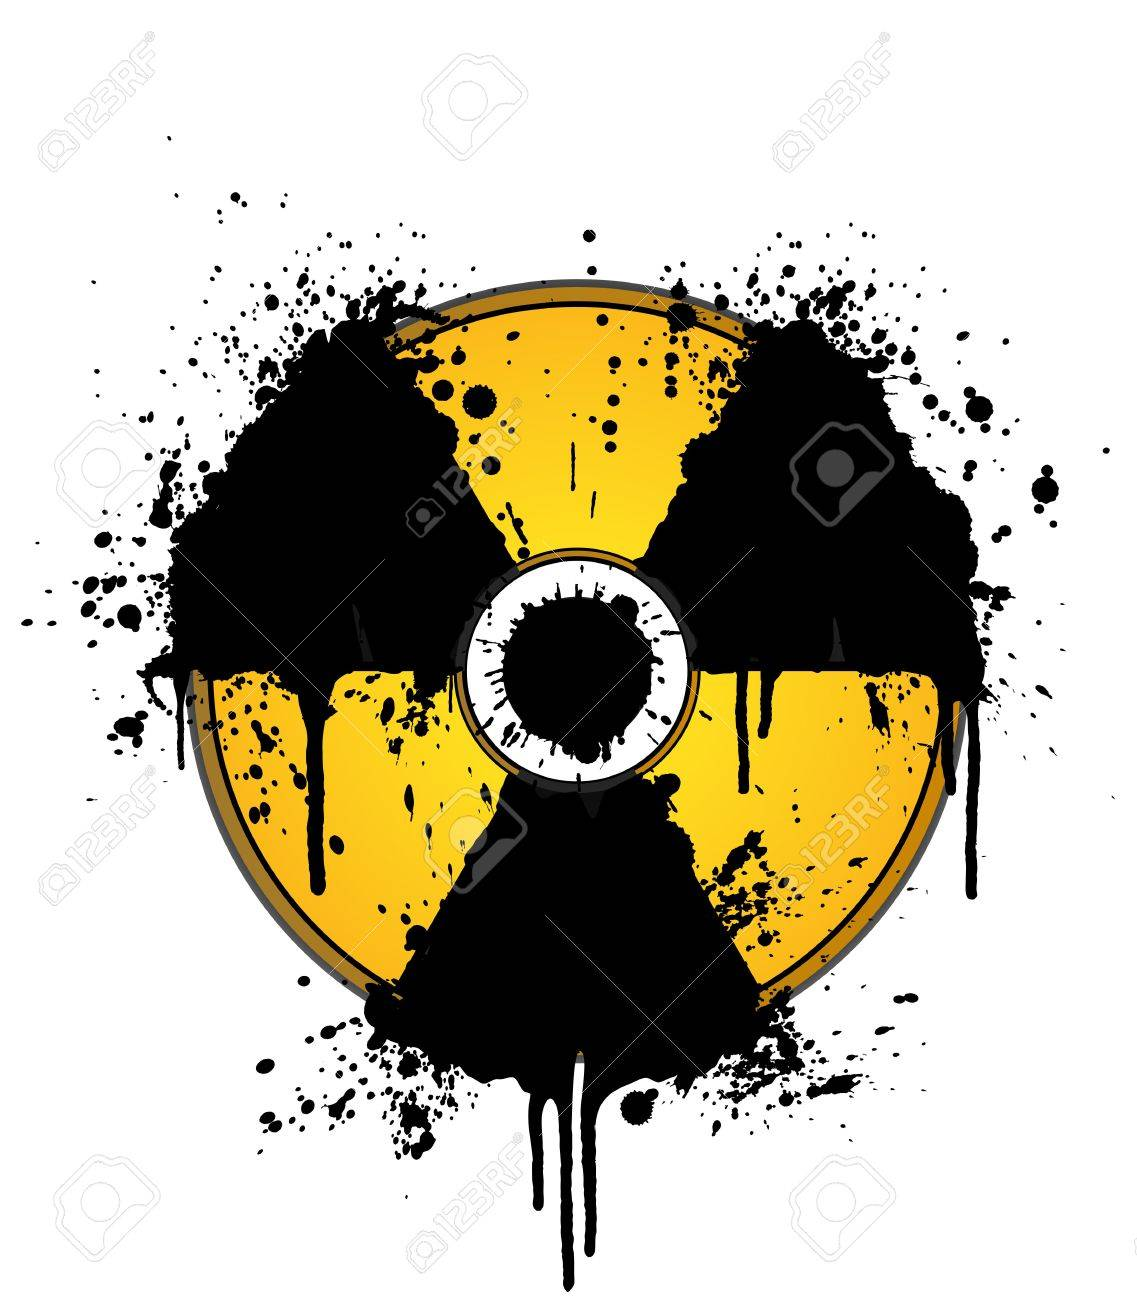 Vector illustration of a splatter ink design element in the shape of the radioactive symbol. On separate layers. Stock Illustration - 3117364